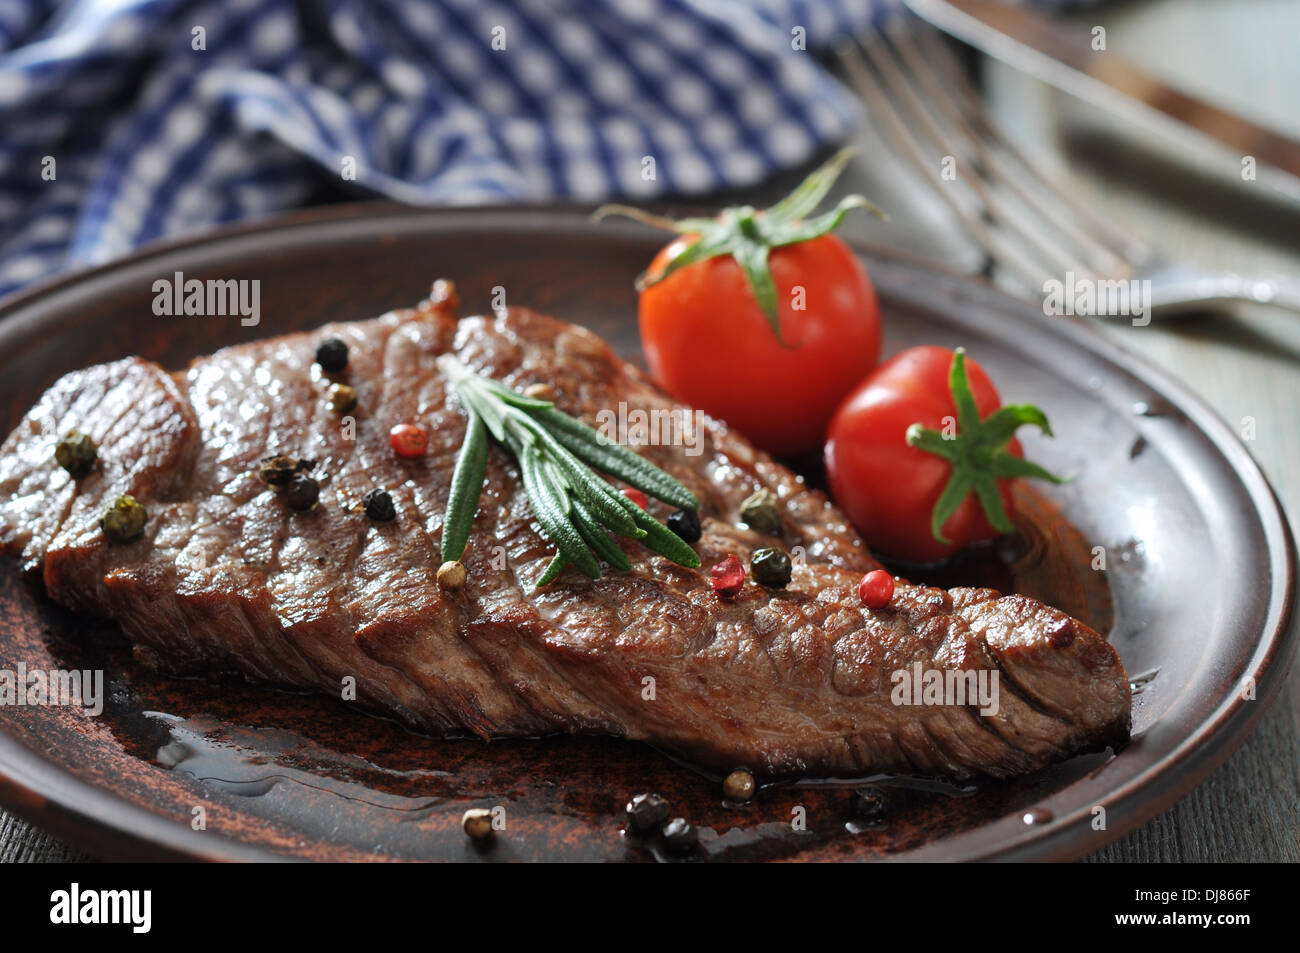 Grilled steak on plate with tomatoes, spices and rosemary closeup Stock Photo